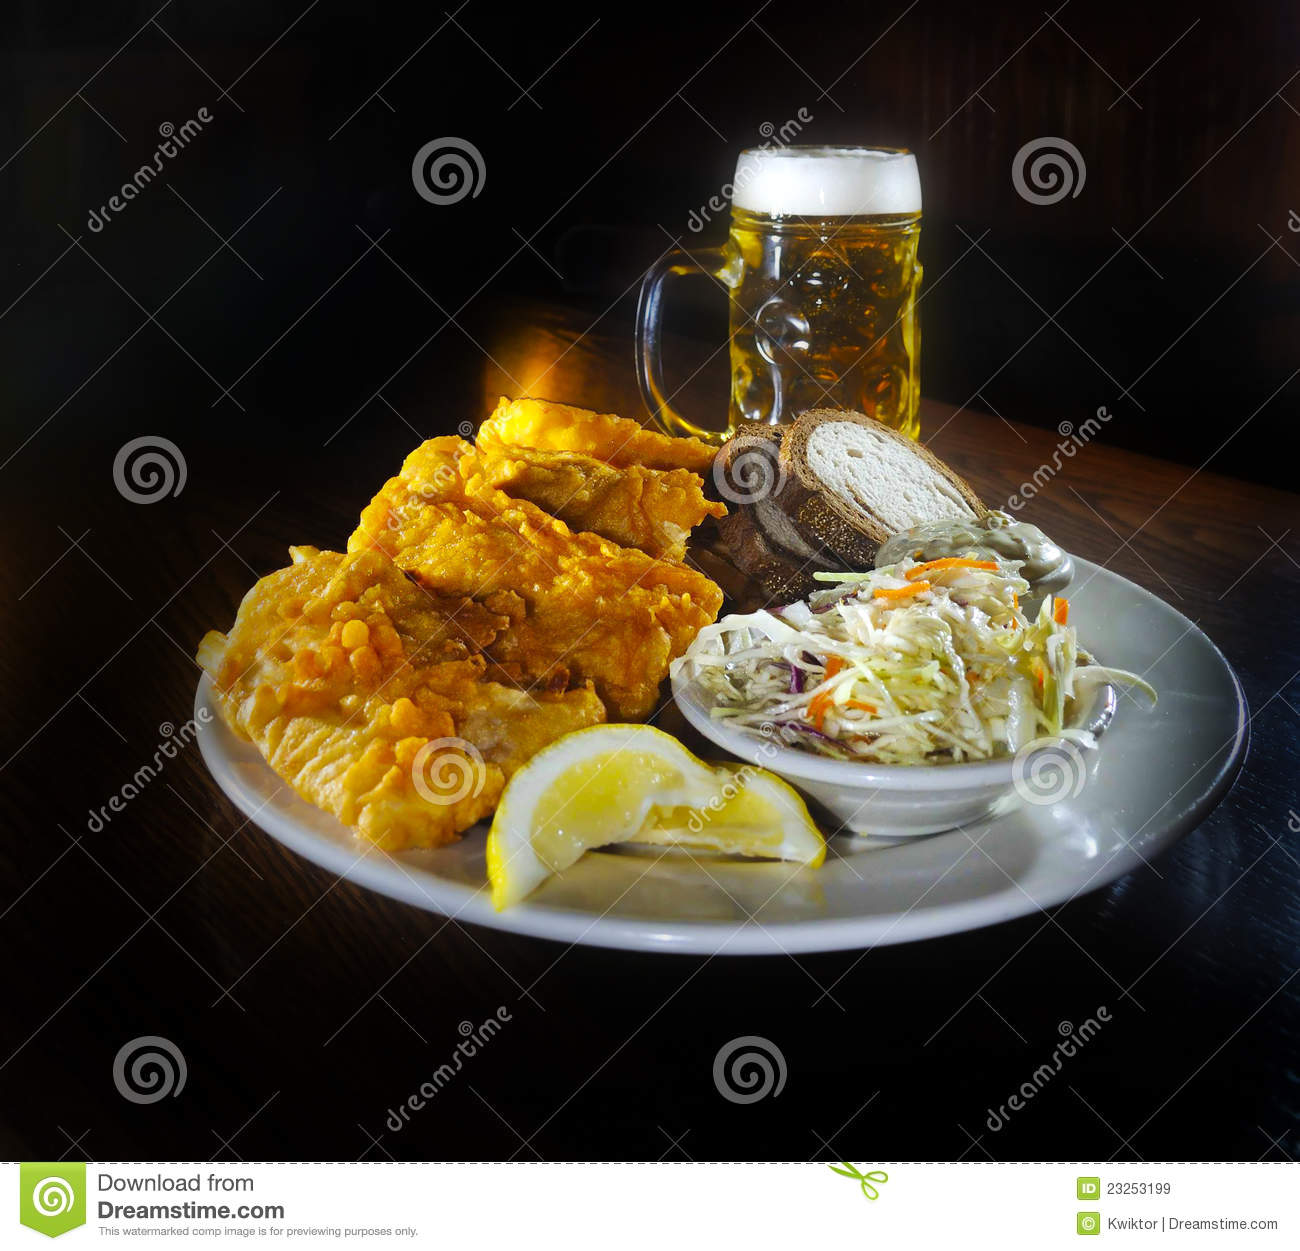 Dinner Free Fish Fry And Beer Stock Image. Image Of Bowl, Meal